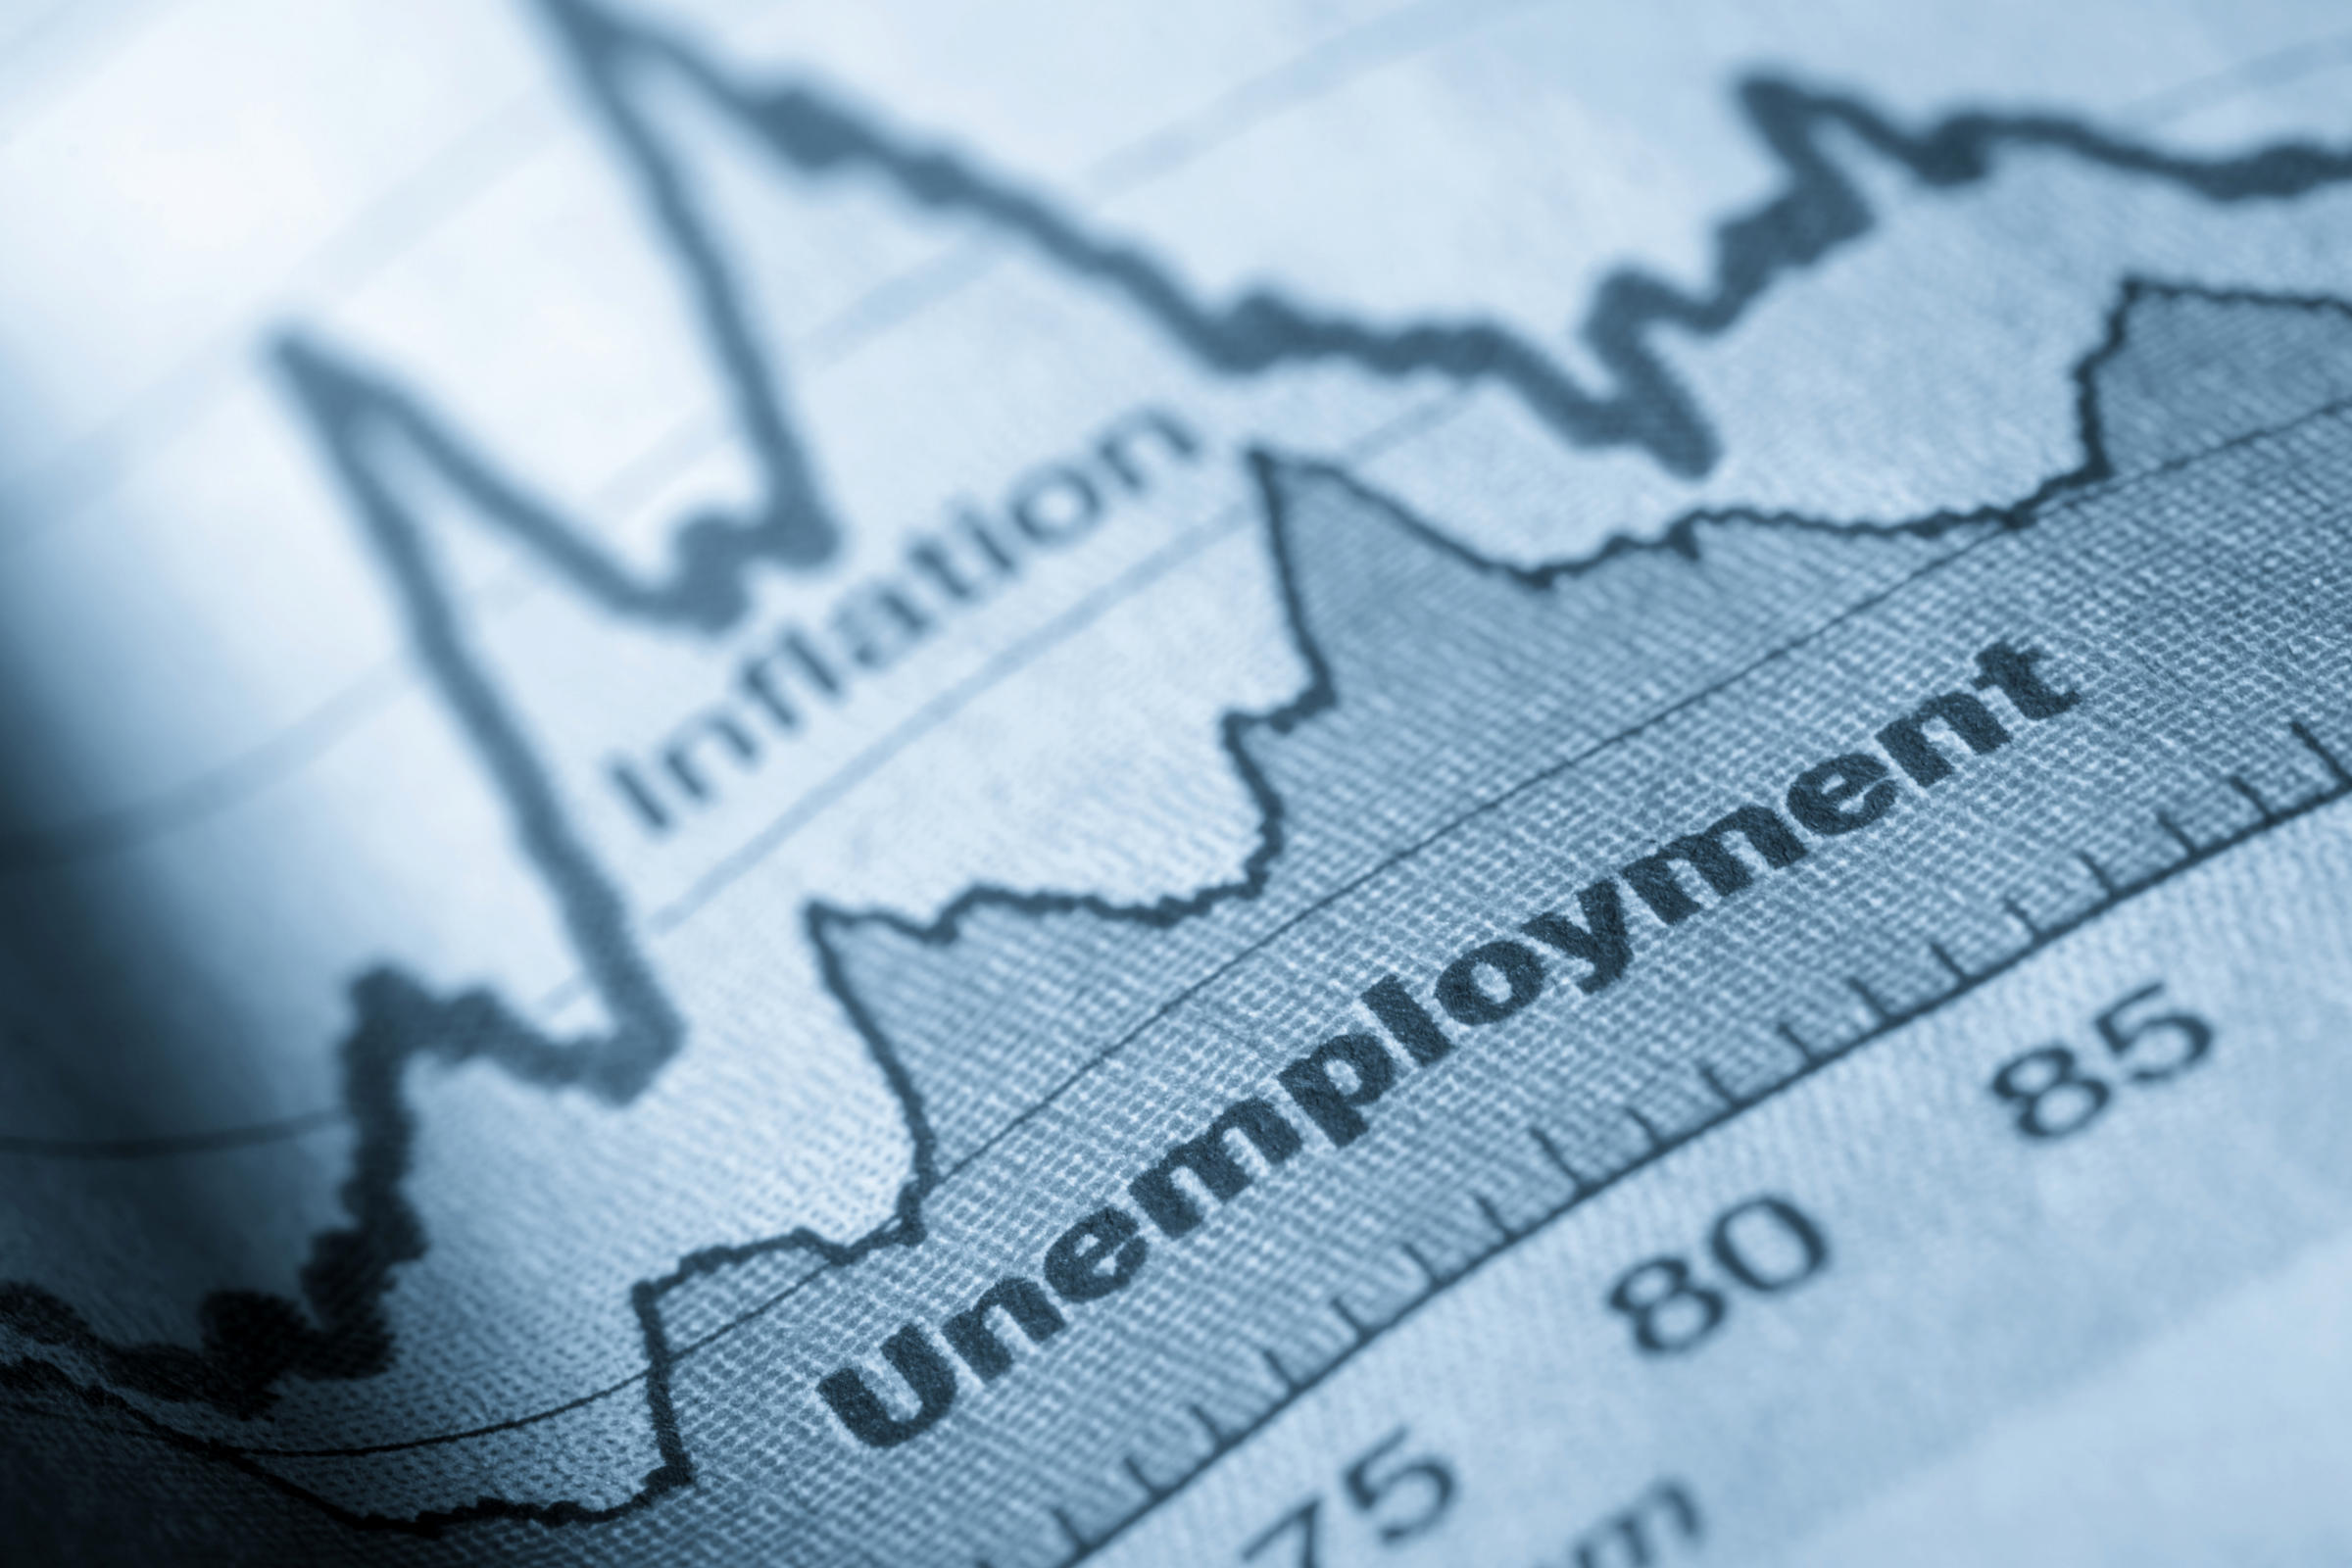 vermont job market not all doom and gloom for men vermont public vermont labor commissioner annie noonan says that although a new report shows high unemployment rates for